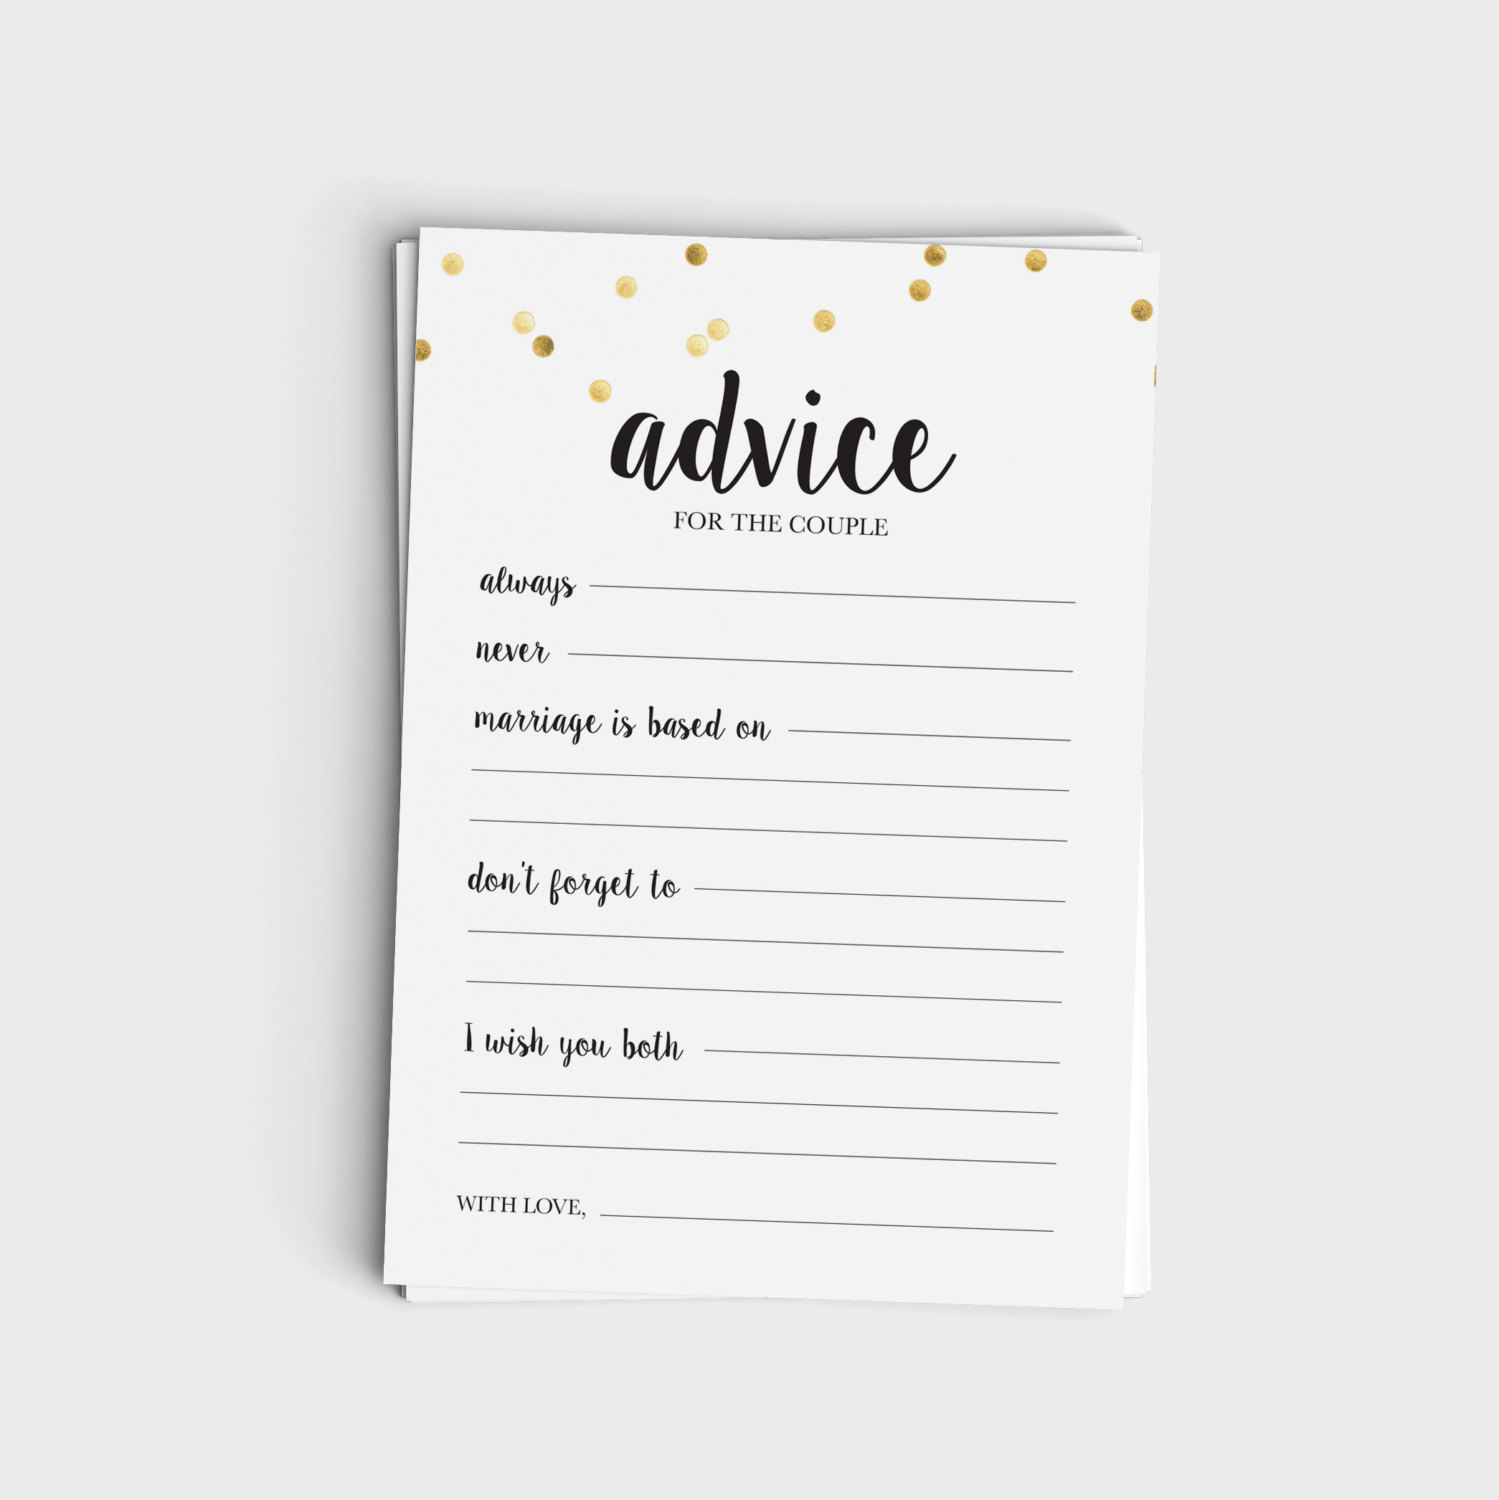 Advice for the Couple - Black & Glitter Design